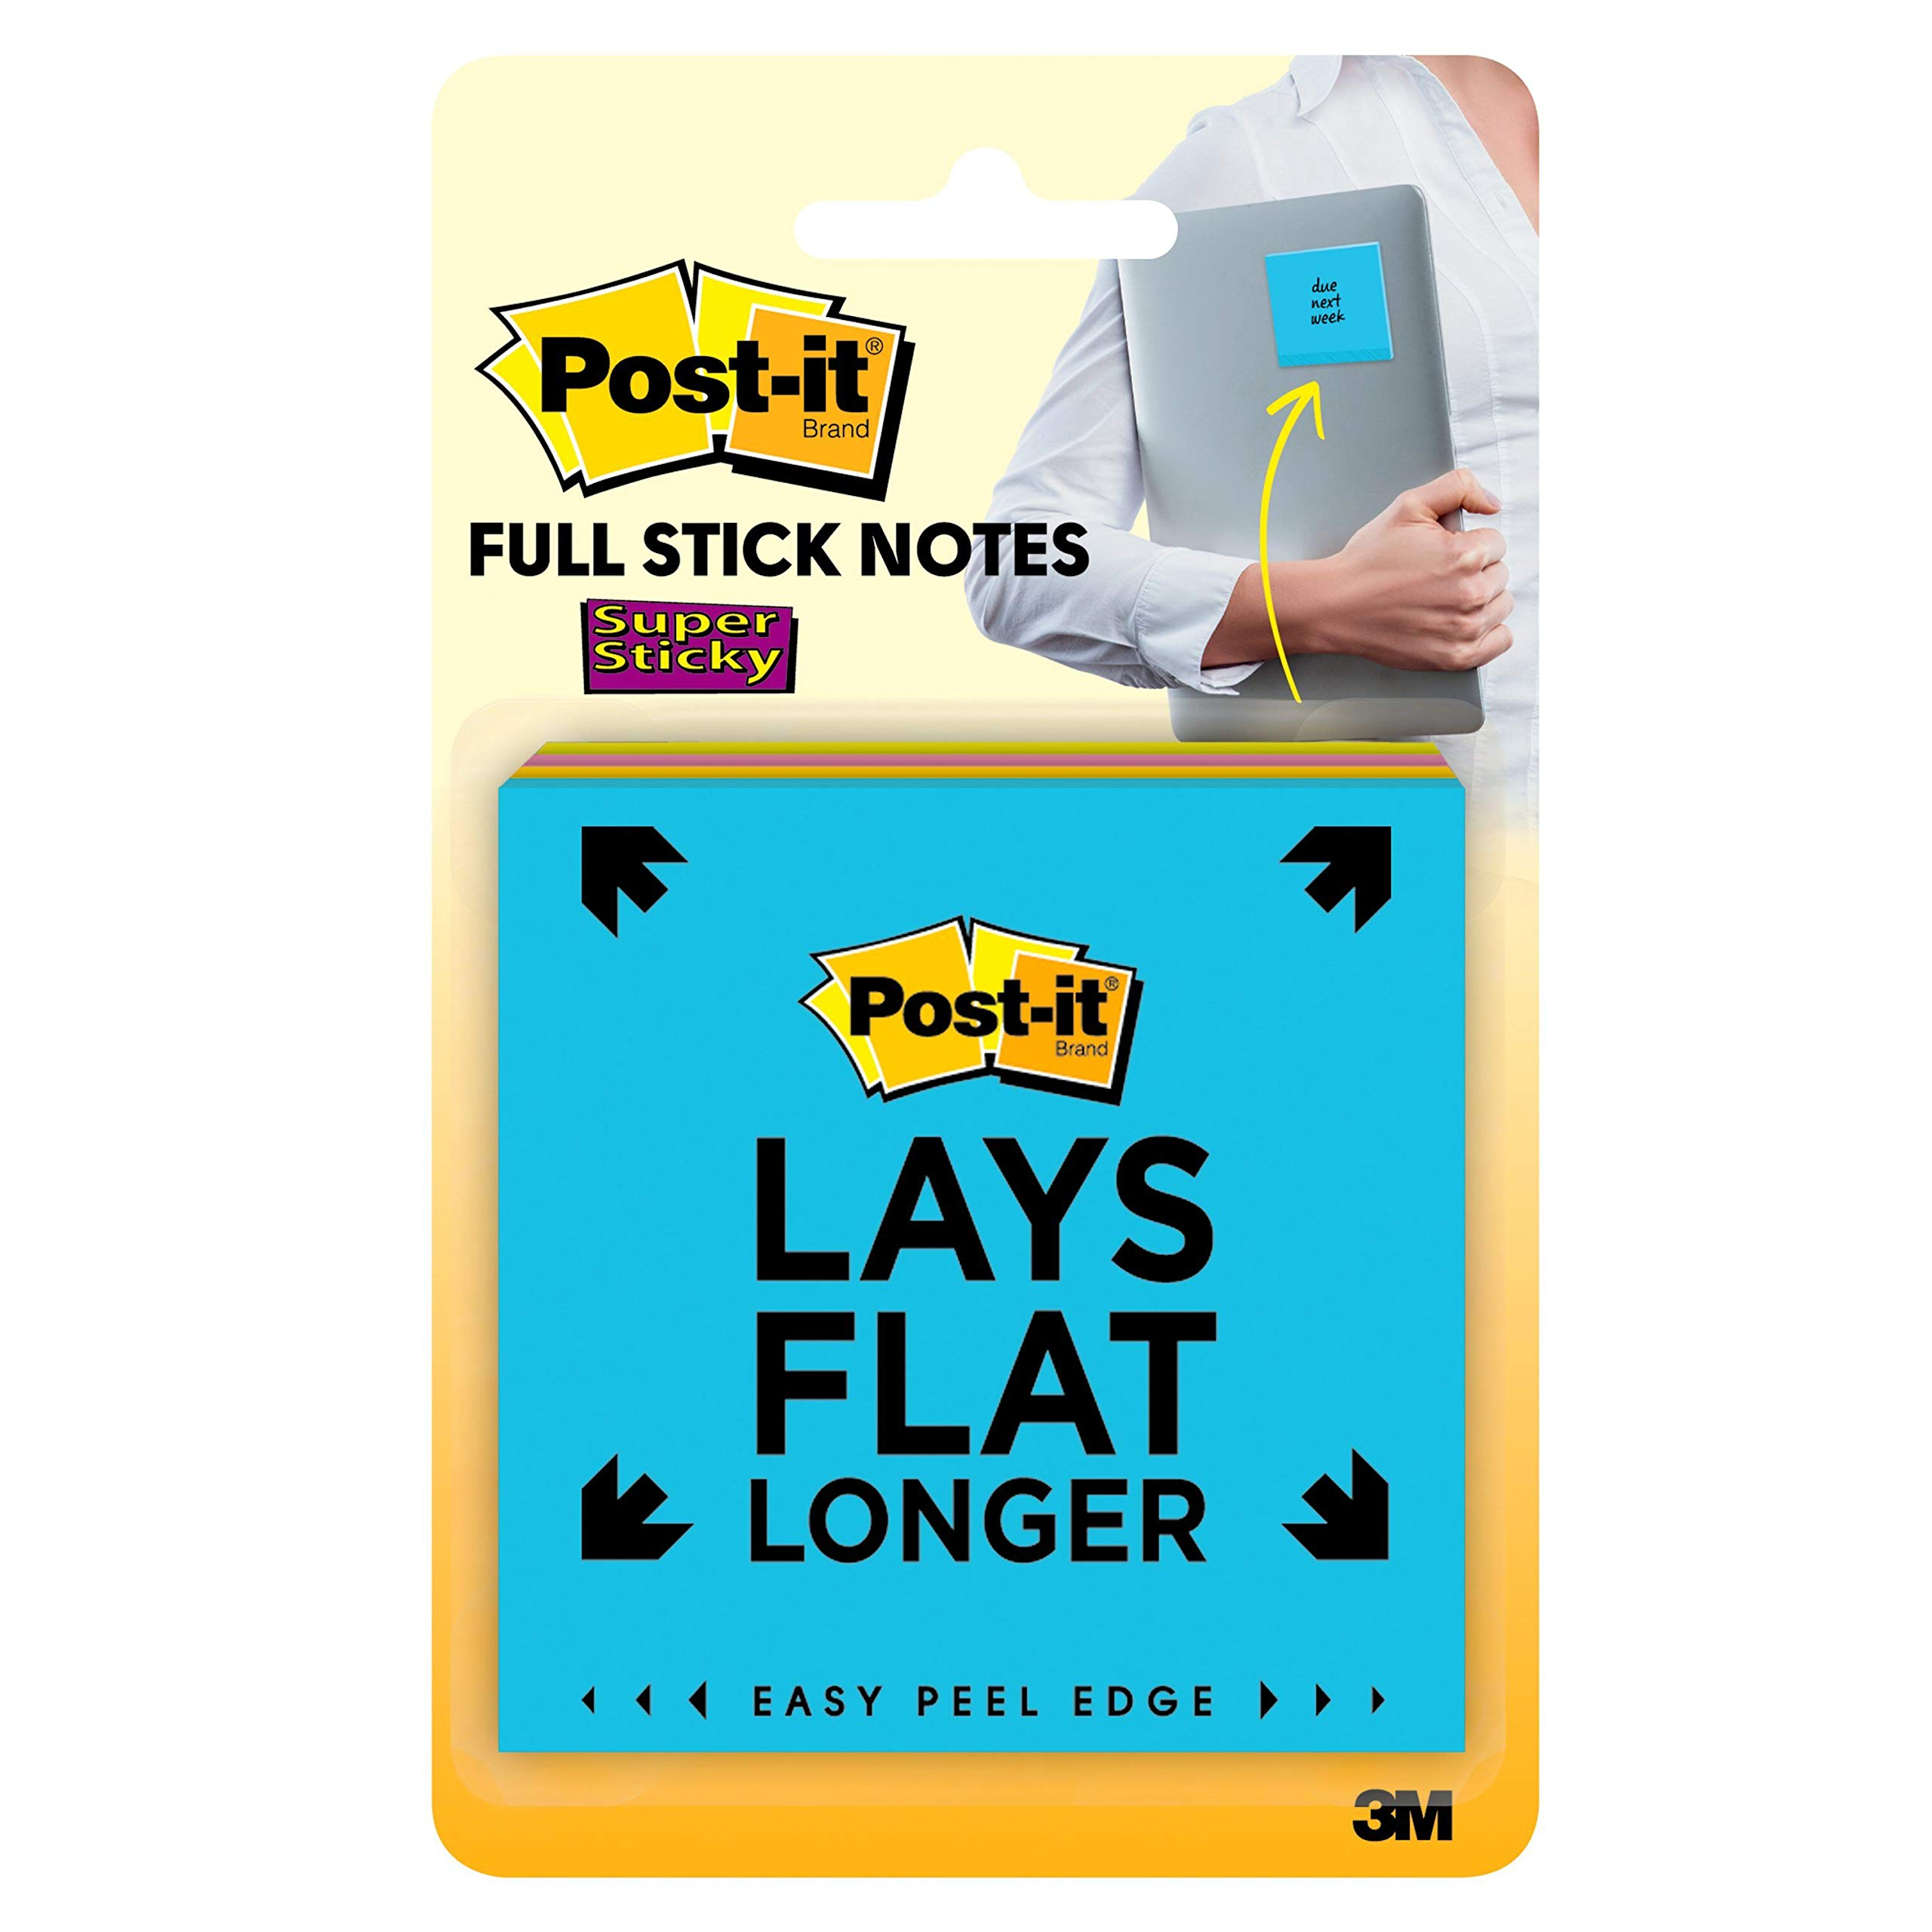 Post-it Super Sticky Full Adhesive Notes, 2x Sticking Power, 3 in x 3 in, Rio de Janeiro Collection, 4 Pads/Pack (F330-4SSAU)